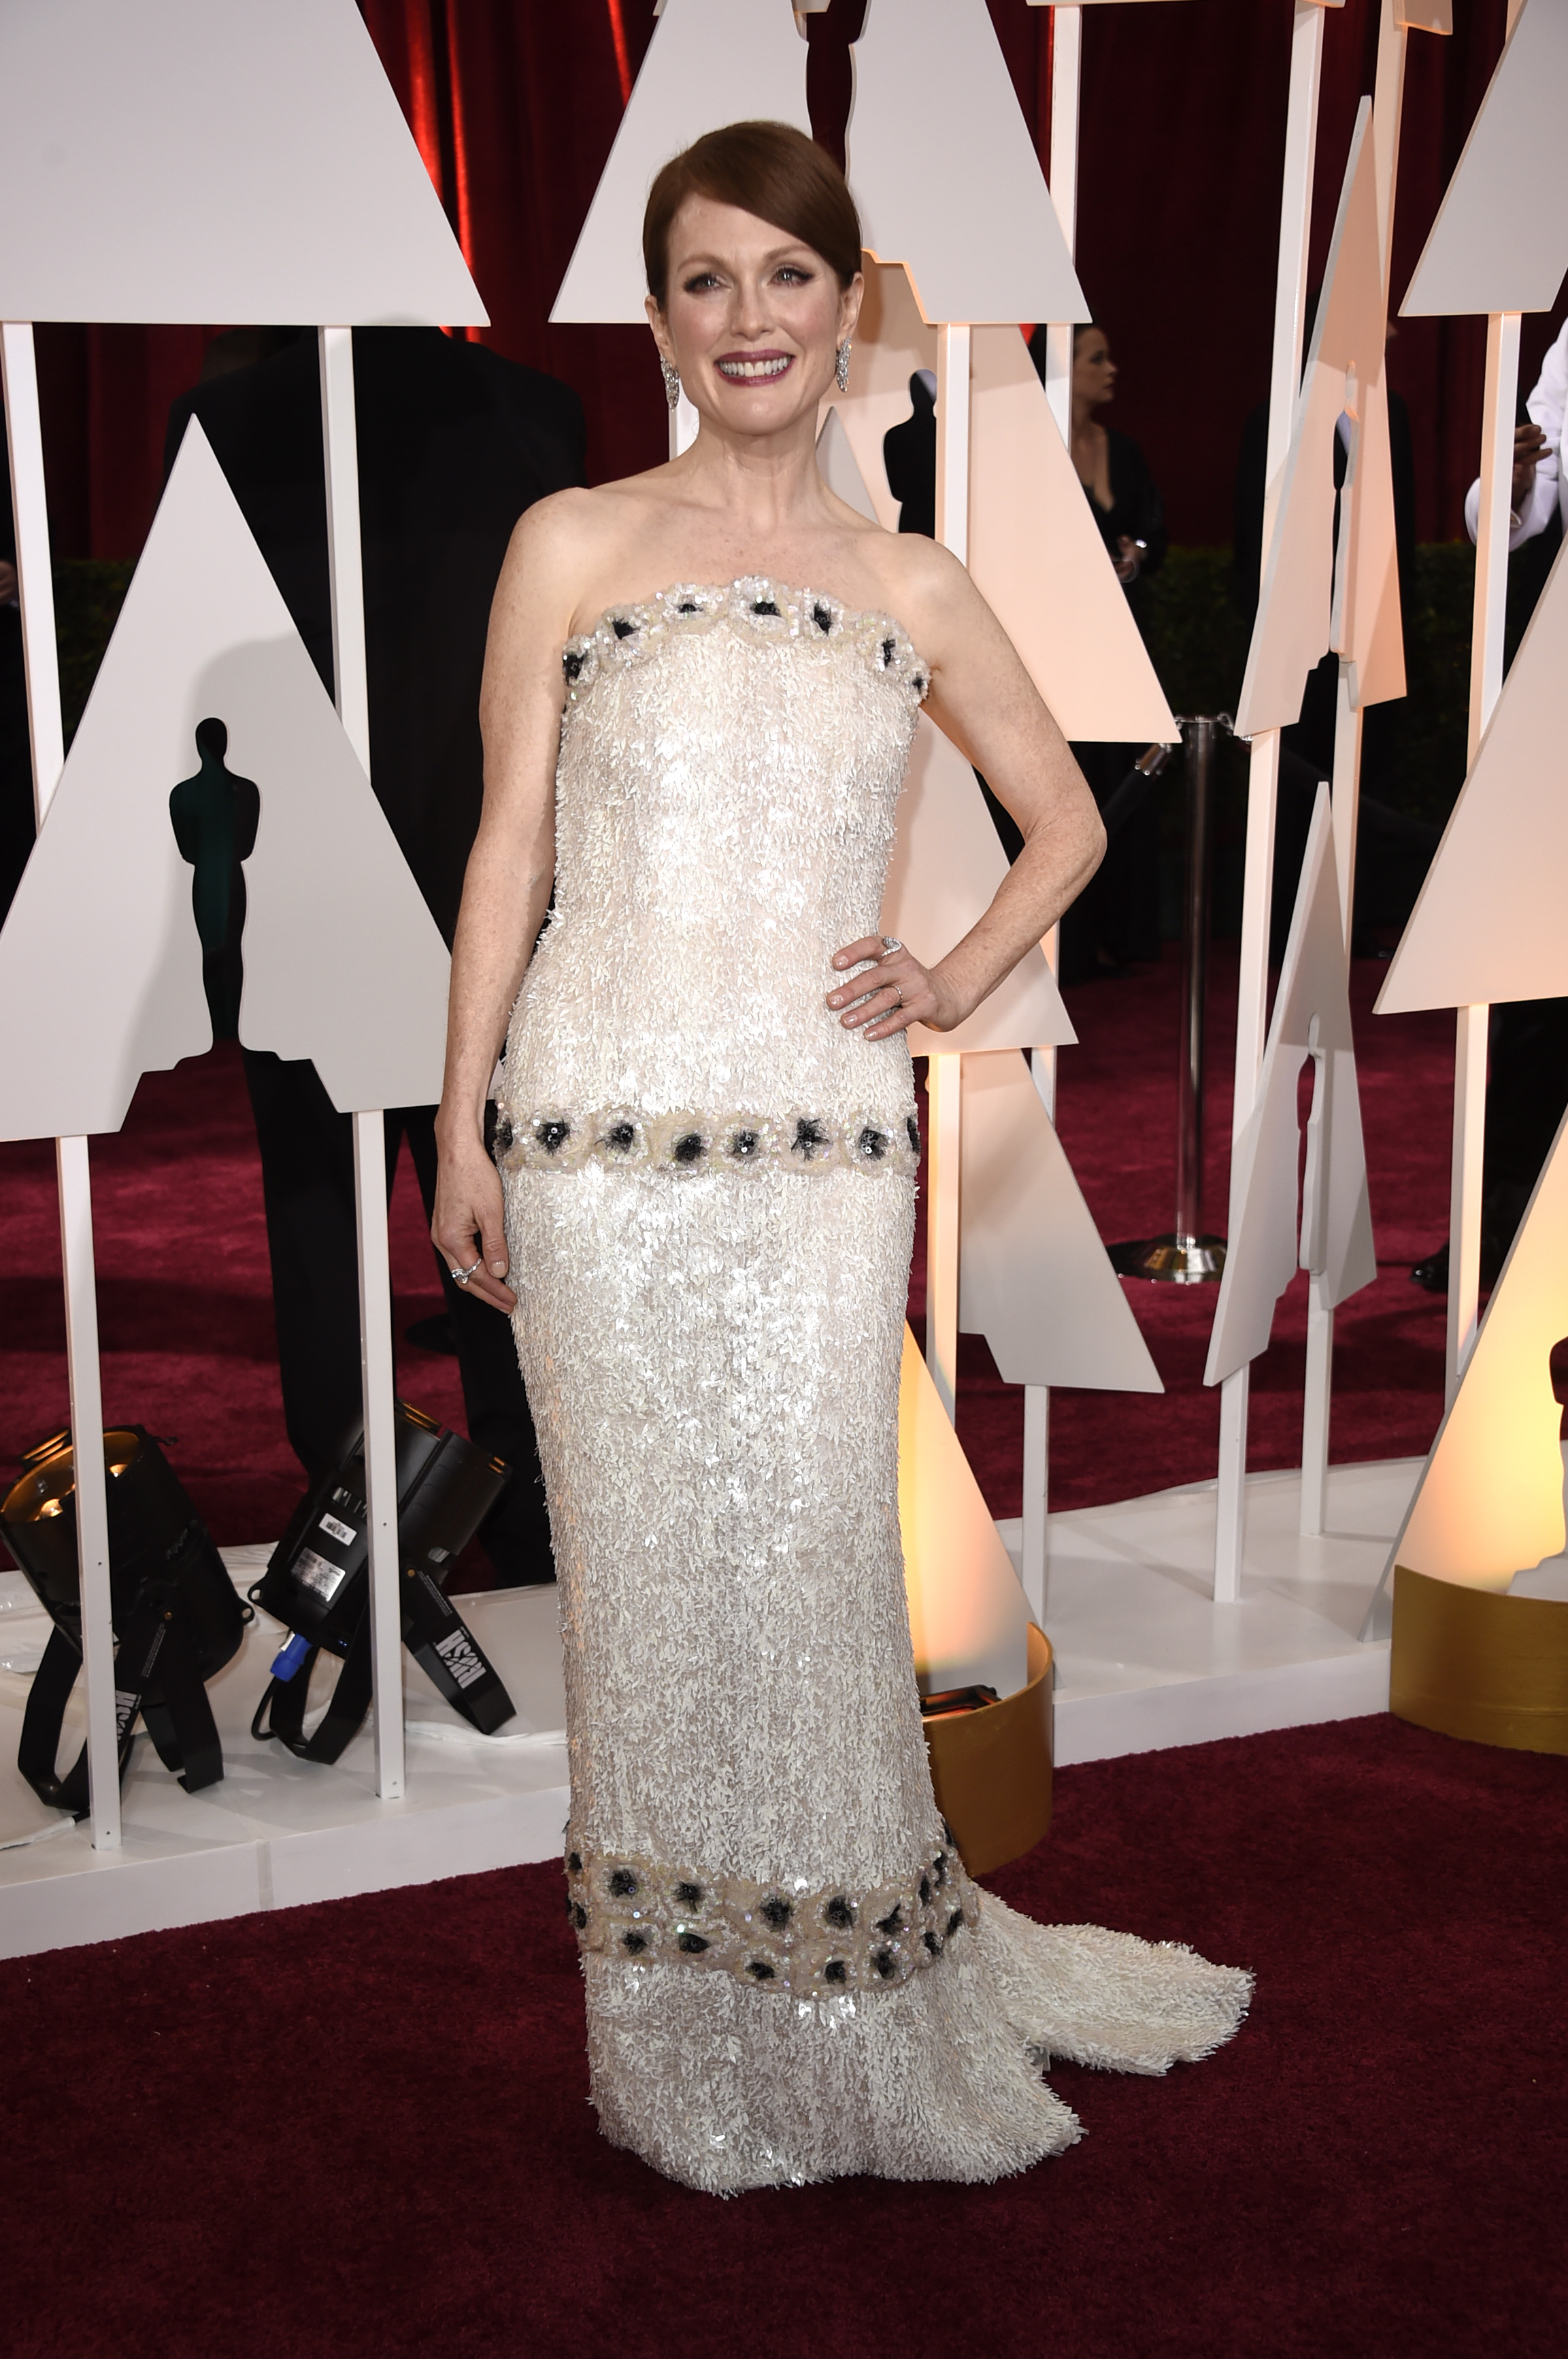 An Image of Julianne Moore at the 2015 Oscars